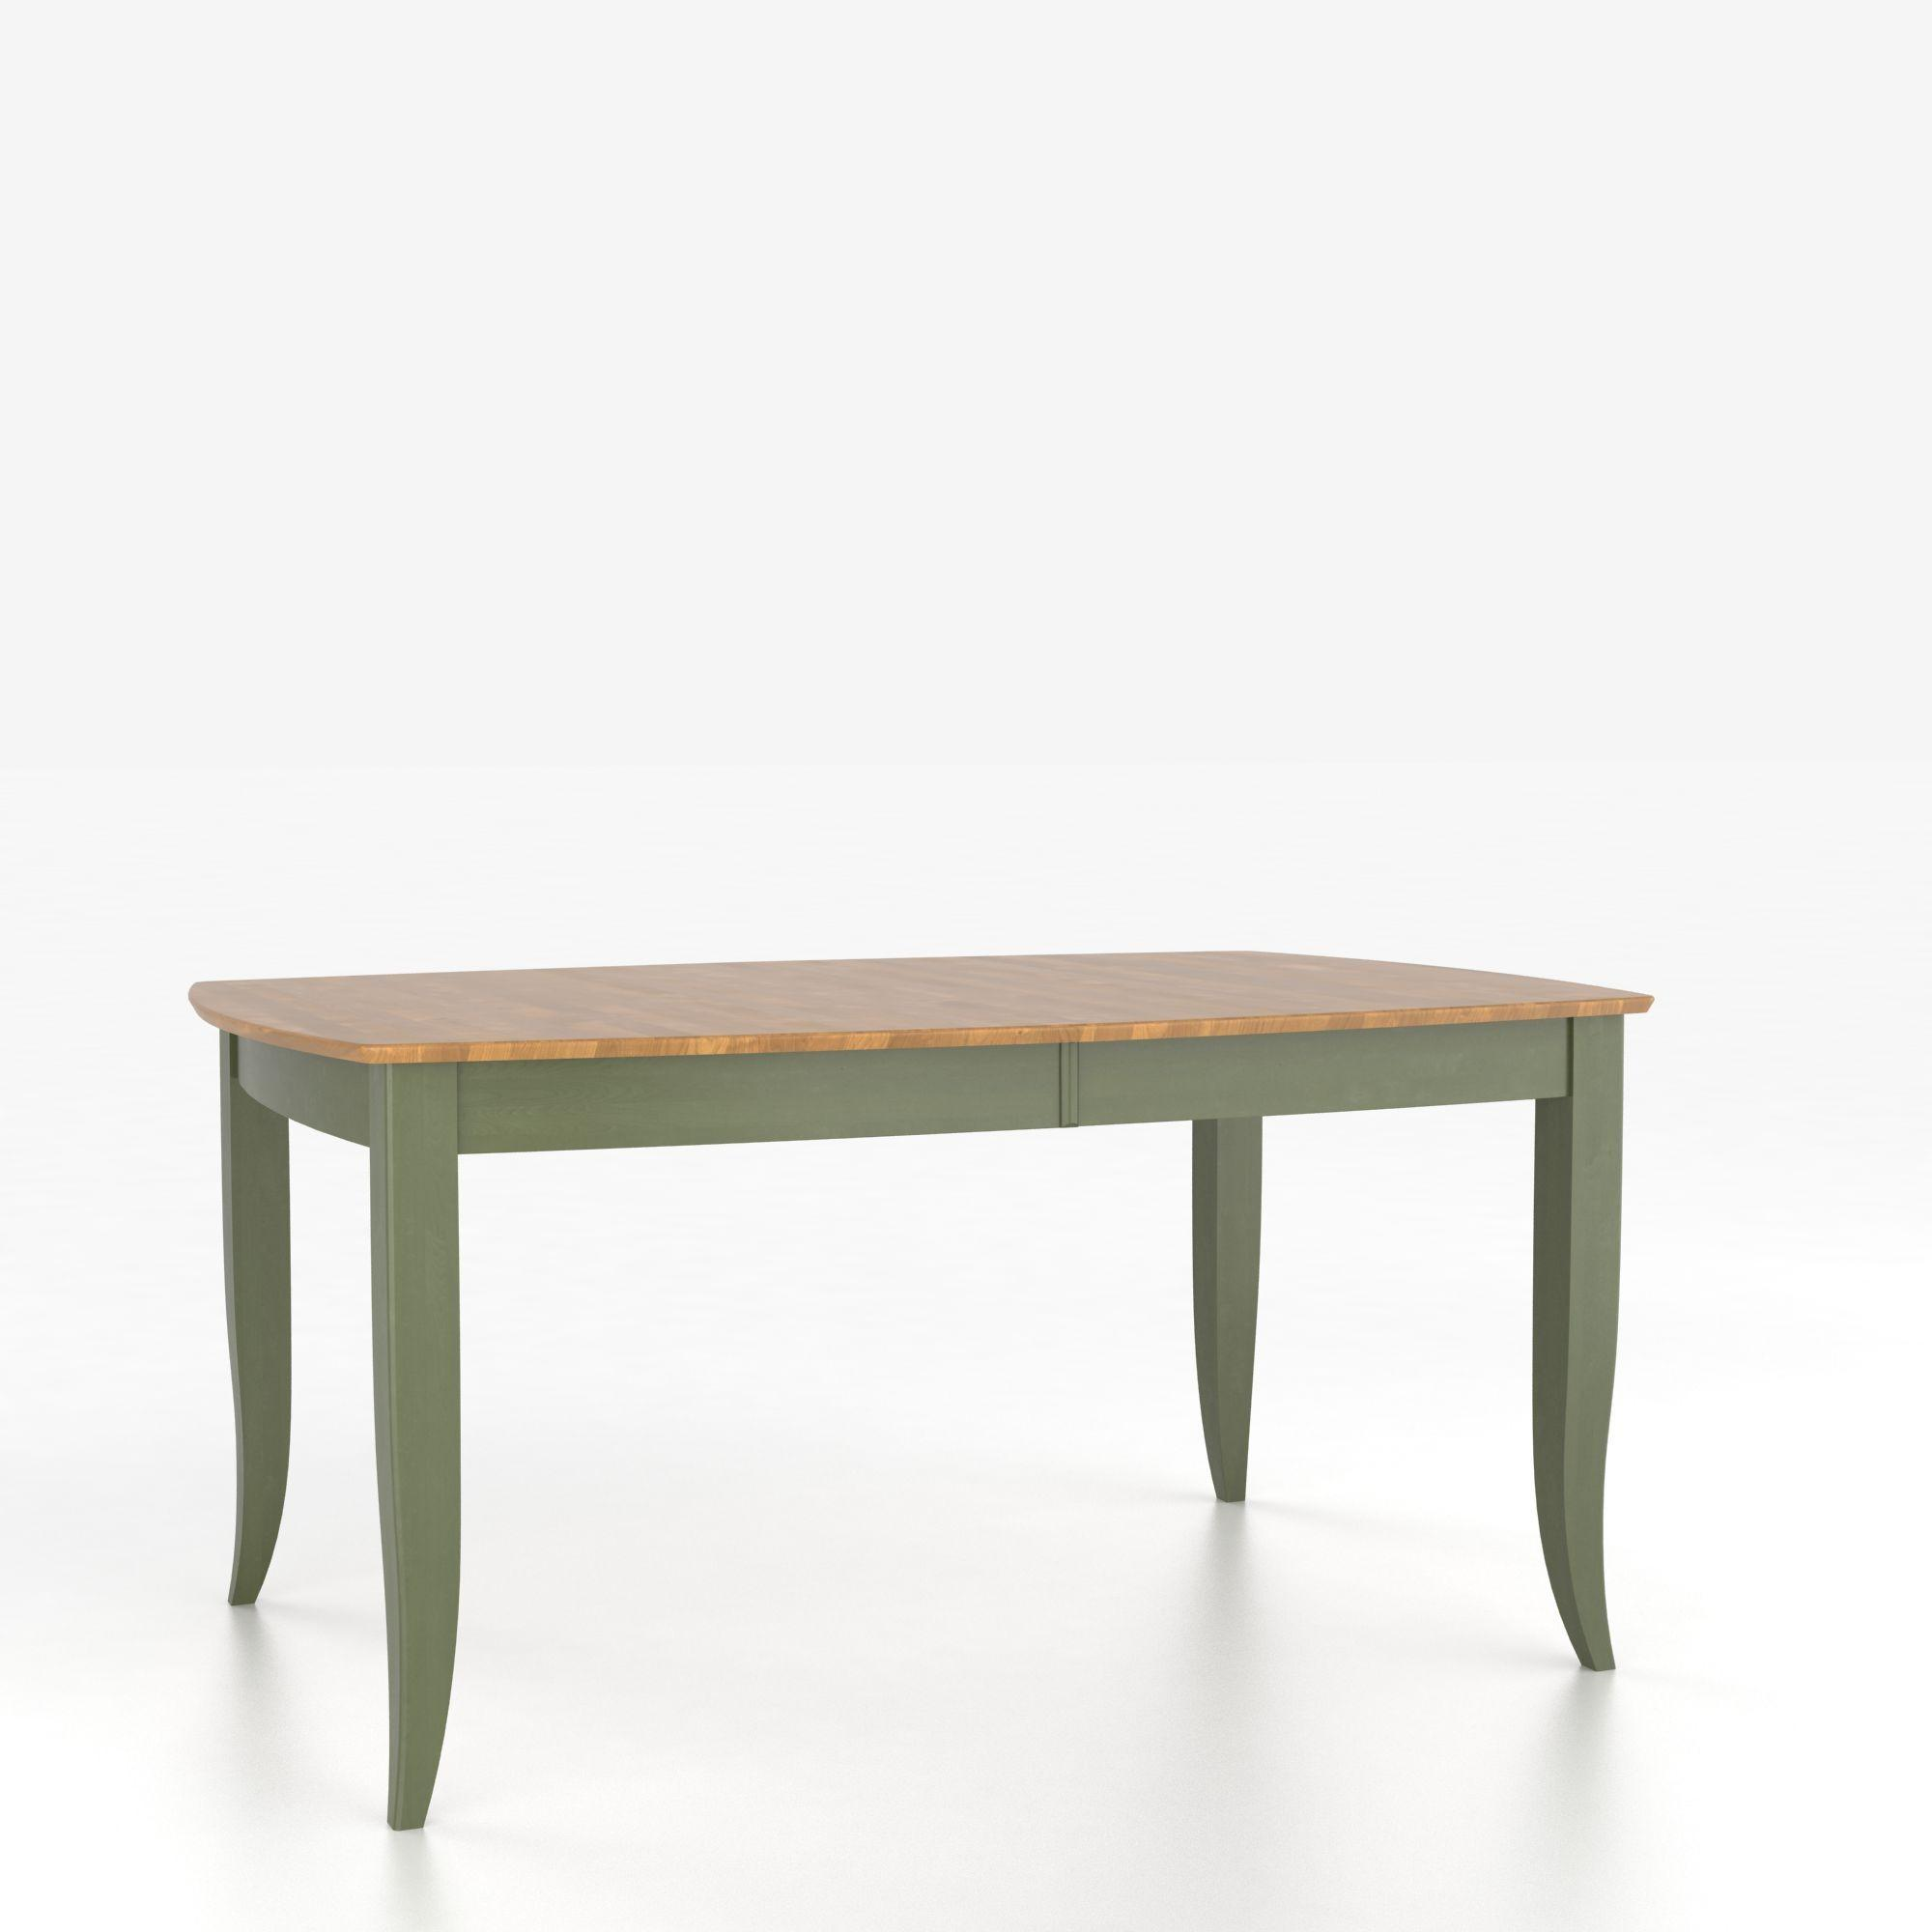 Custom Dining Tables Customizable Boat Shape Table with Legs by Canadel at Steger's Furniture